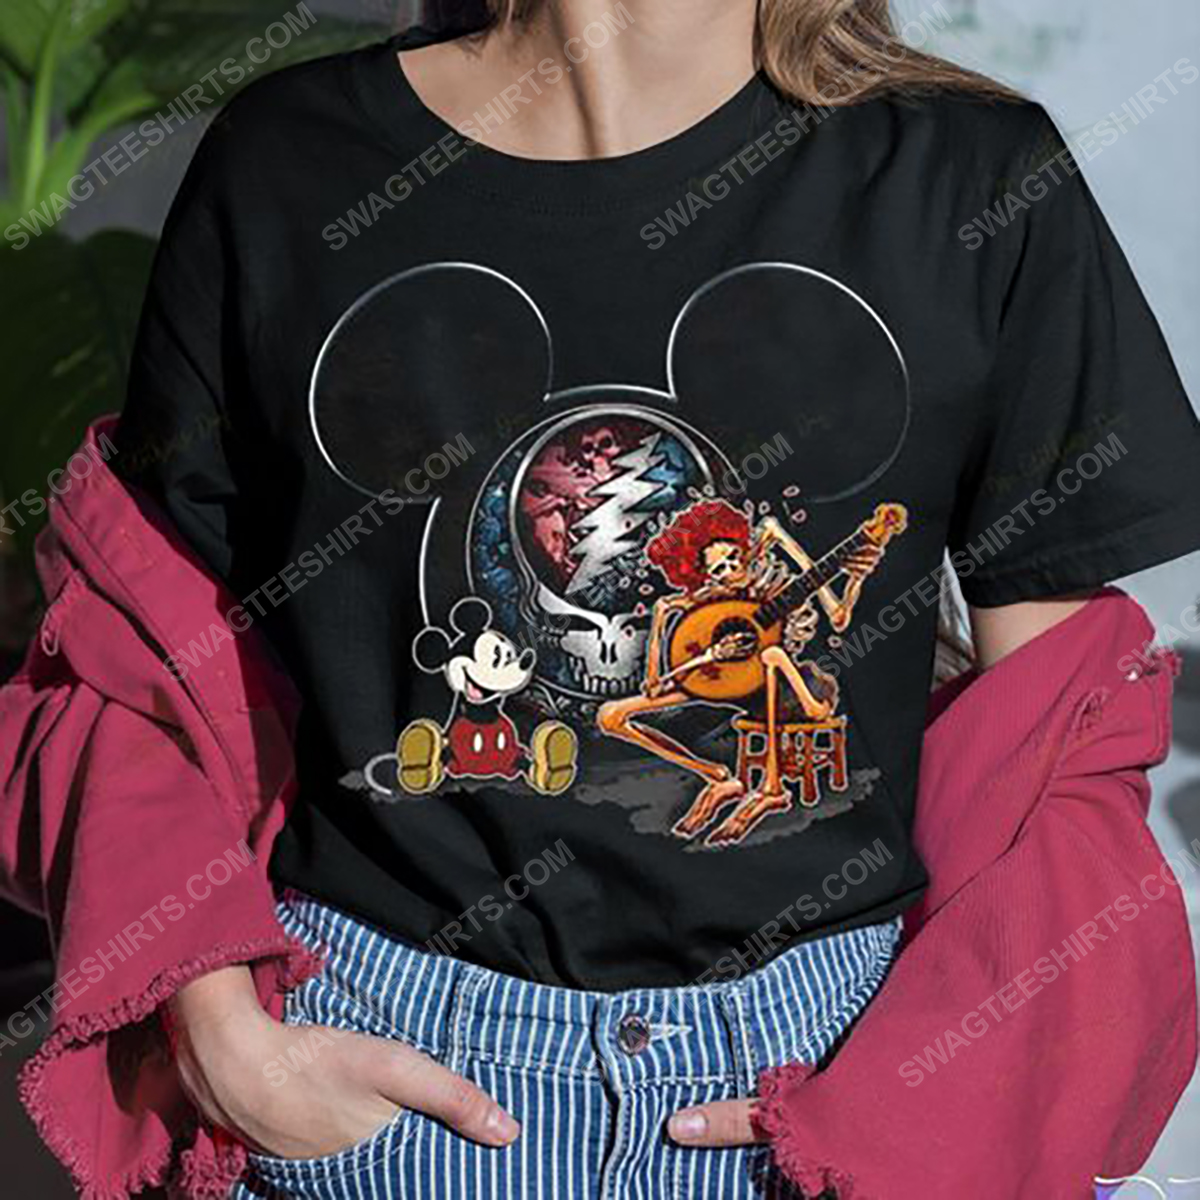 The grateful dead rock band and mickey mouse shirt 4(1)